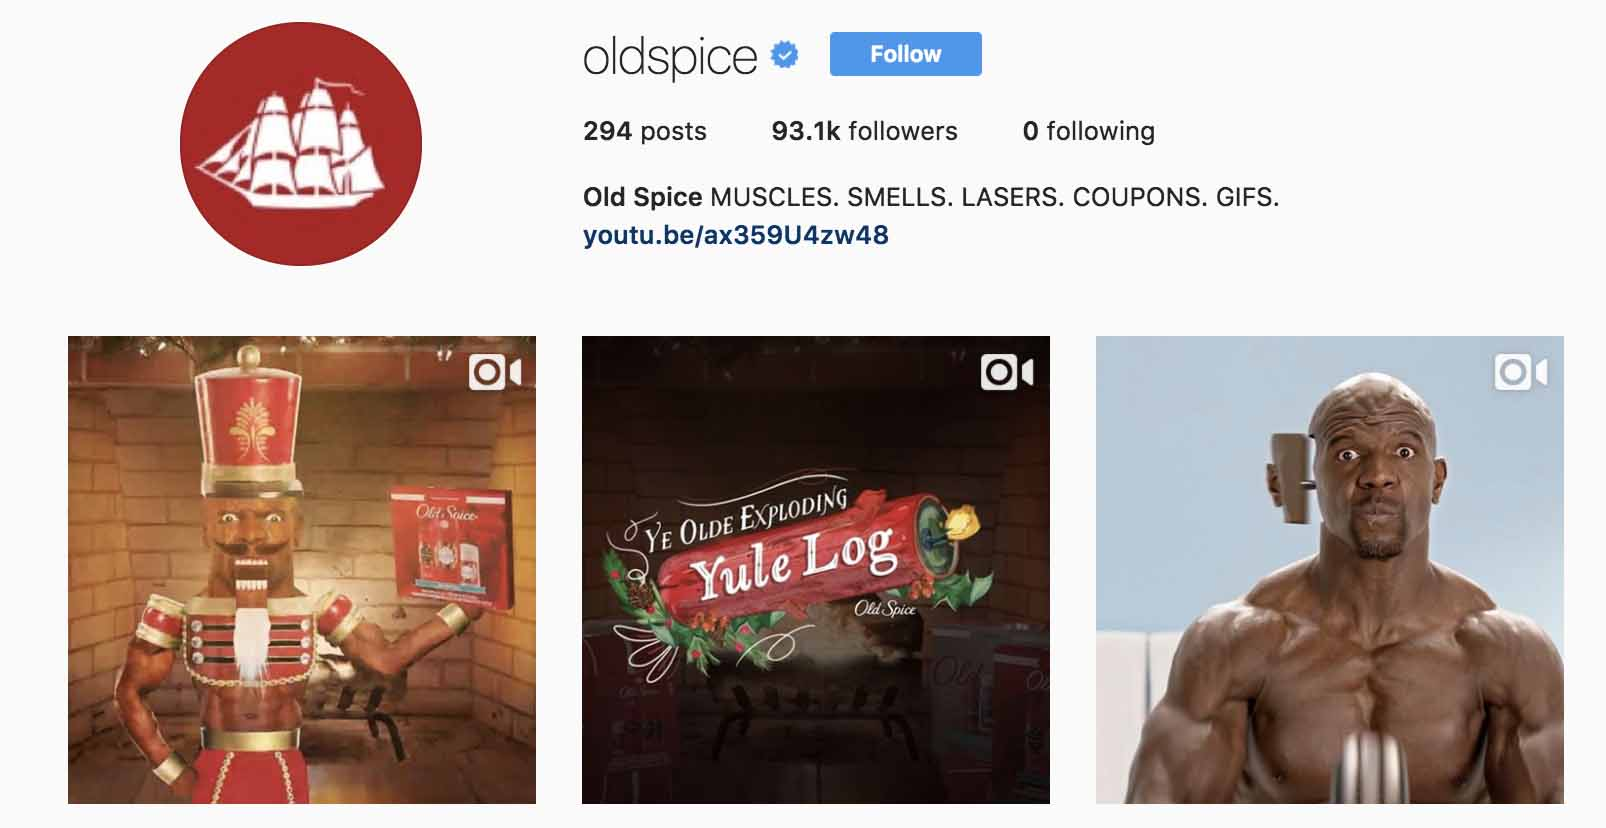 instagram-bio-ideas-oldspice